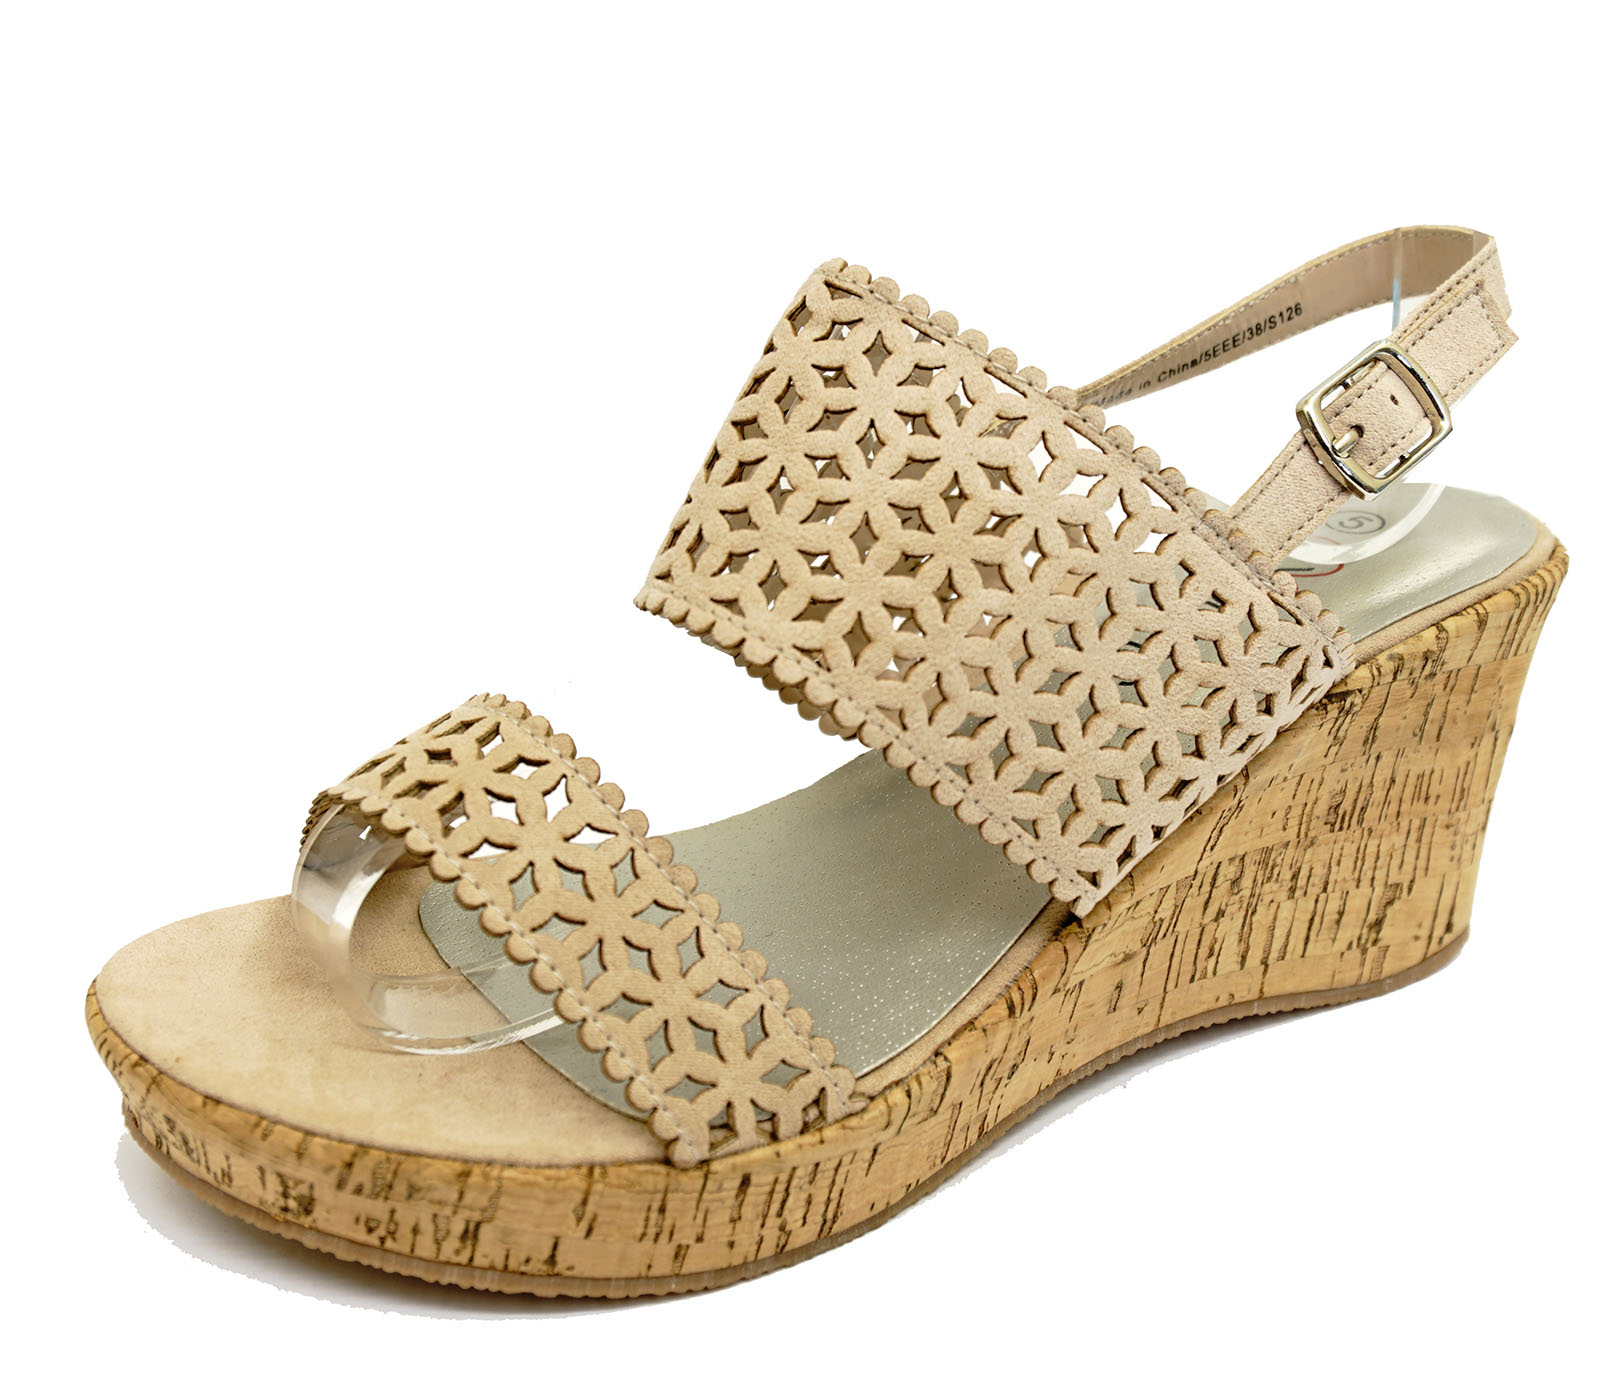 6a1566a7bc9 Details about LADIES BEIGE WIDE-FIT EEE WEDGES SUMMER PEEP-TOE STRAPPY  SANDALS SHOES UK 4-10